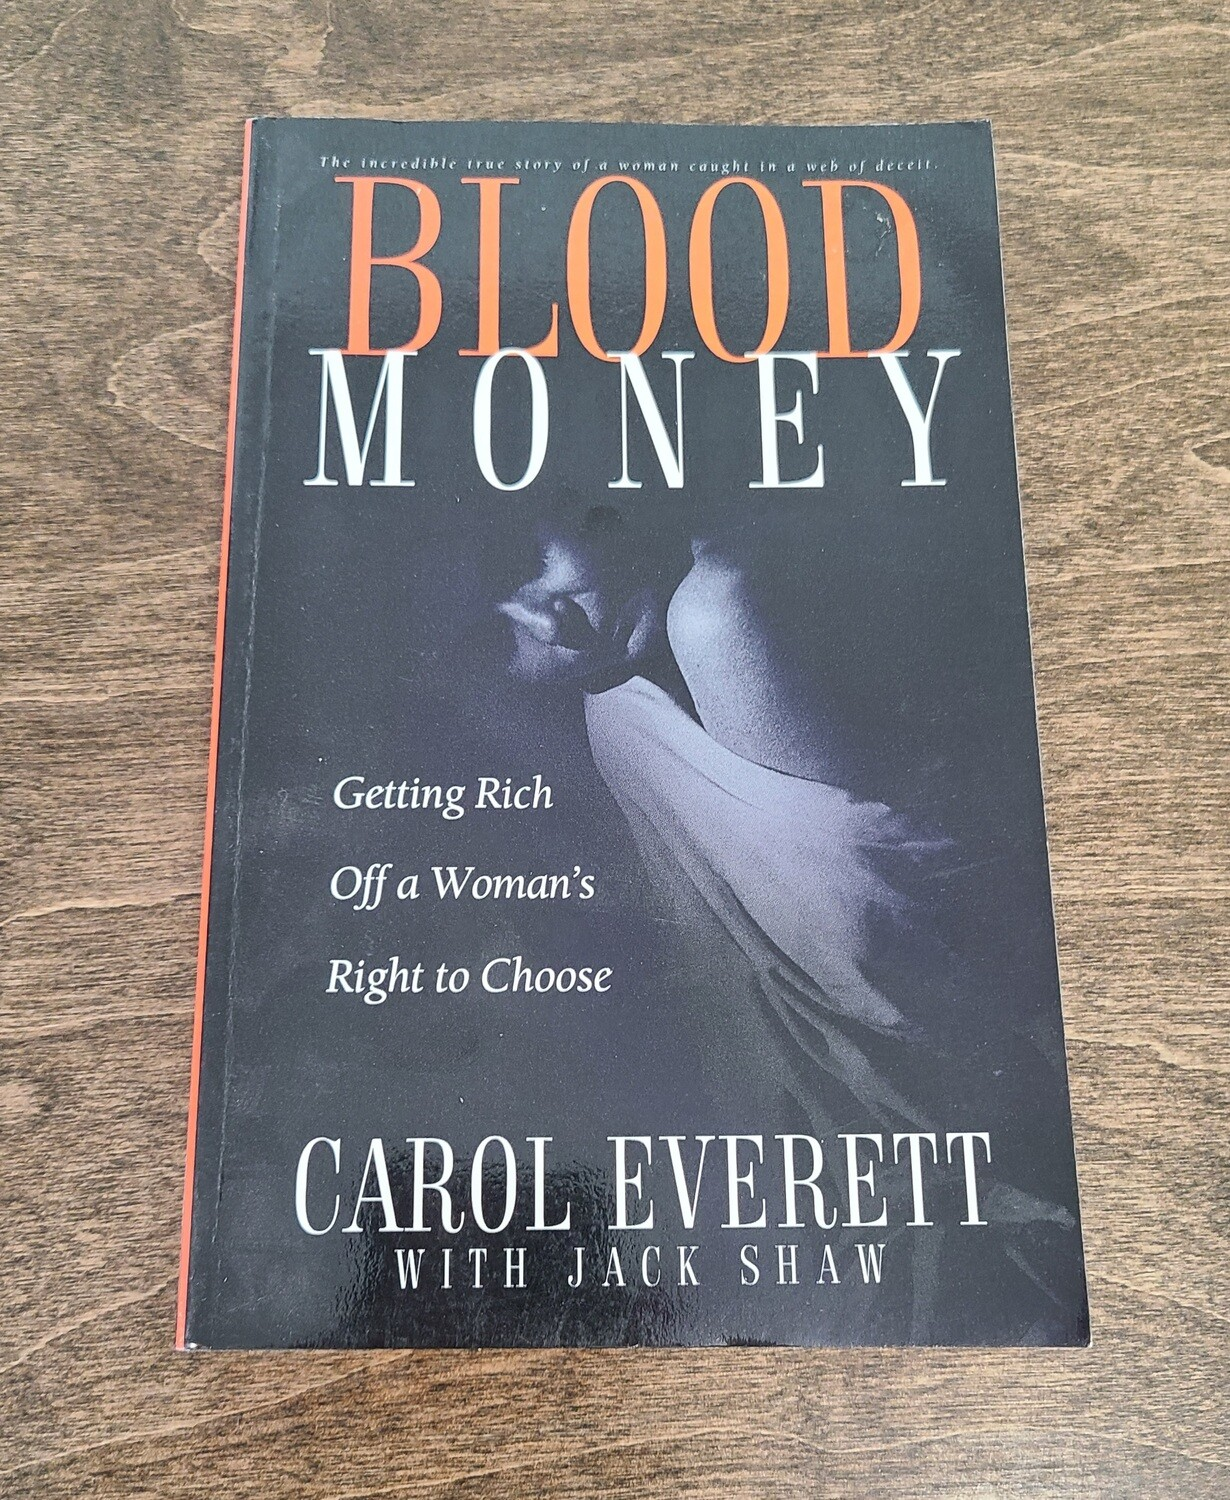 Blood Money by Carol Everett with Jack Shaw